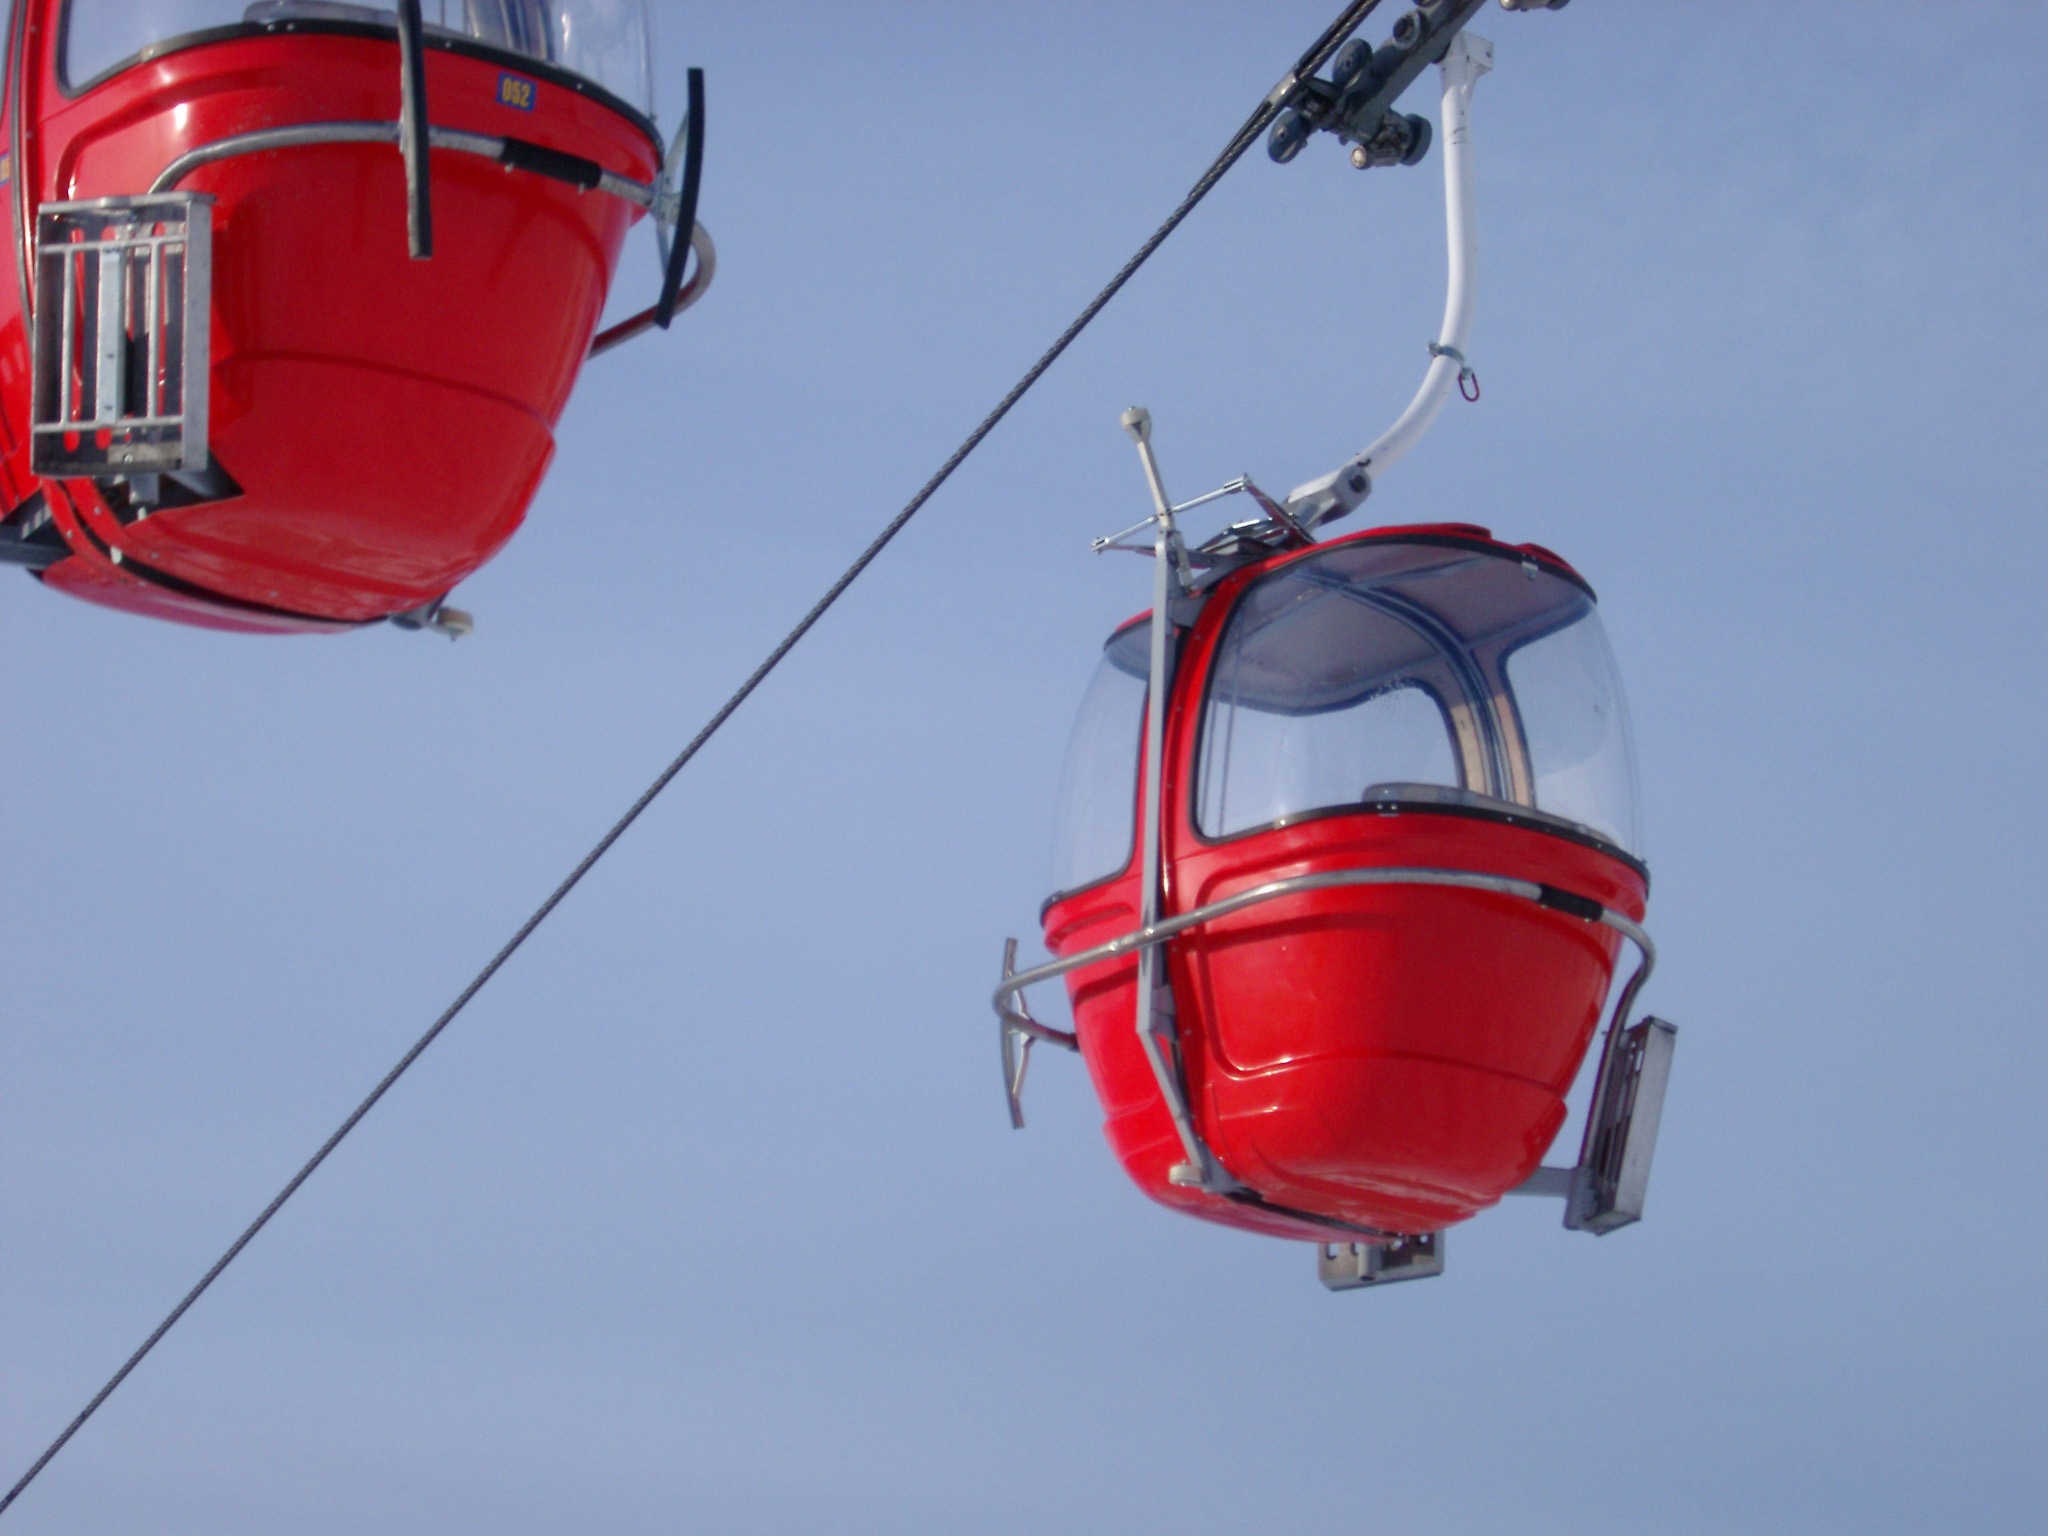 High-Tech Empty Red Cable Cars for Adventure on Lighter Blue Sky Background.